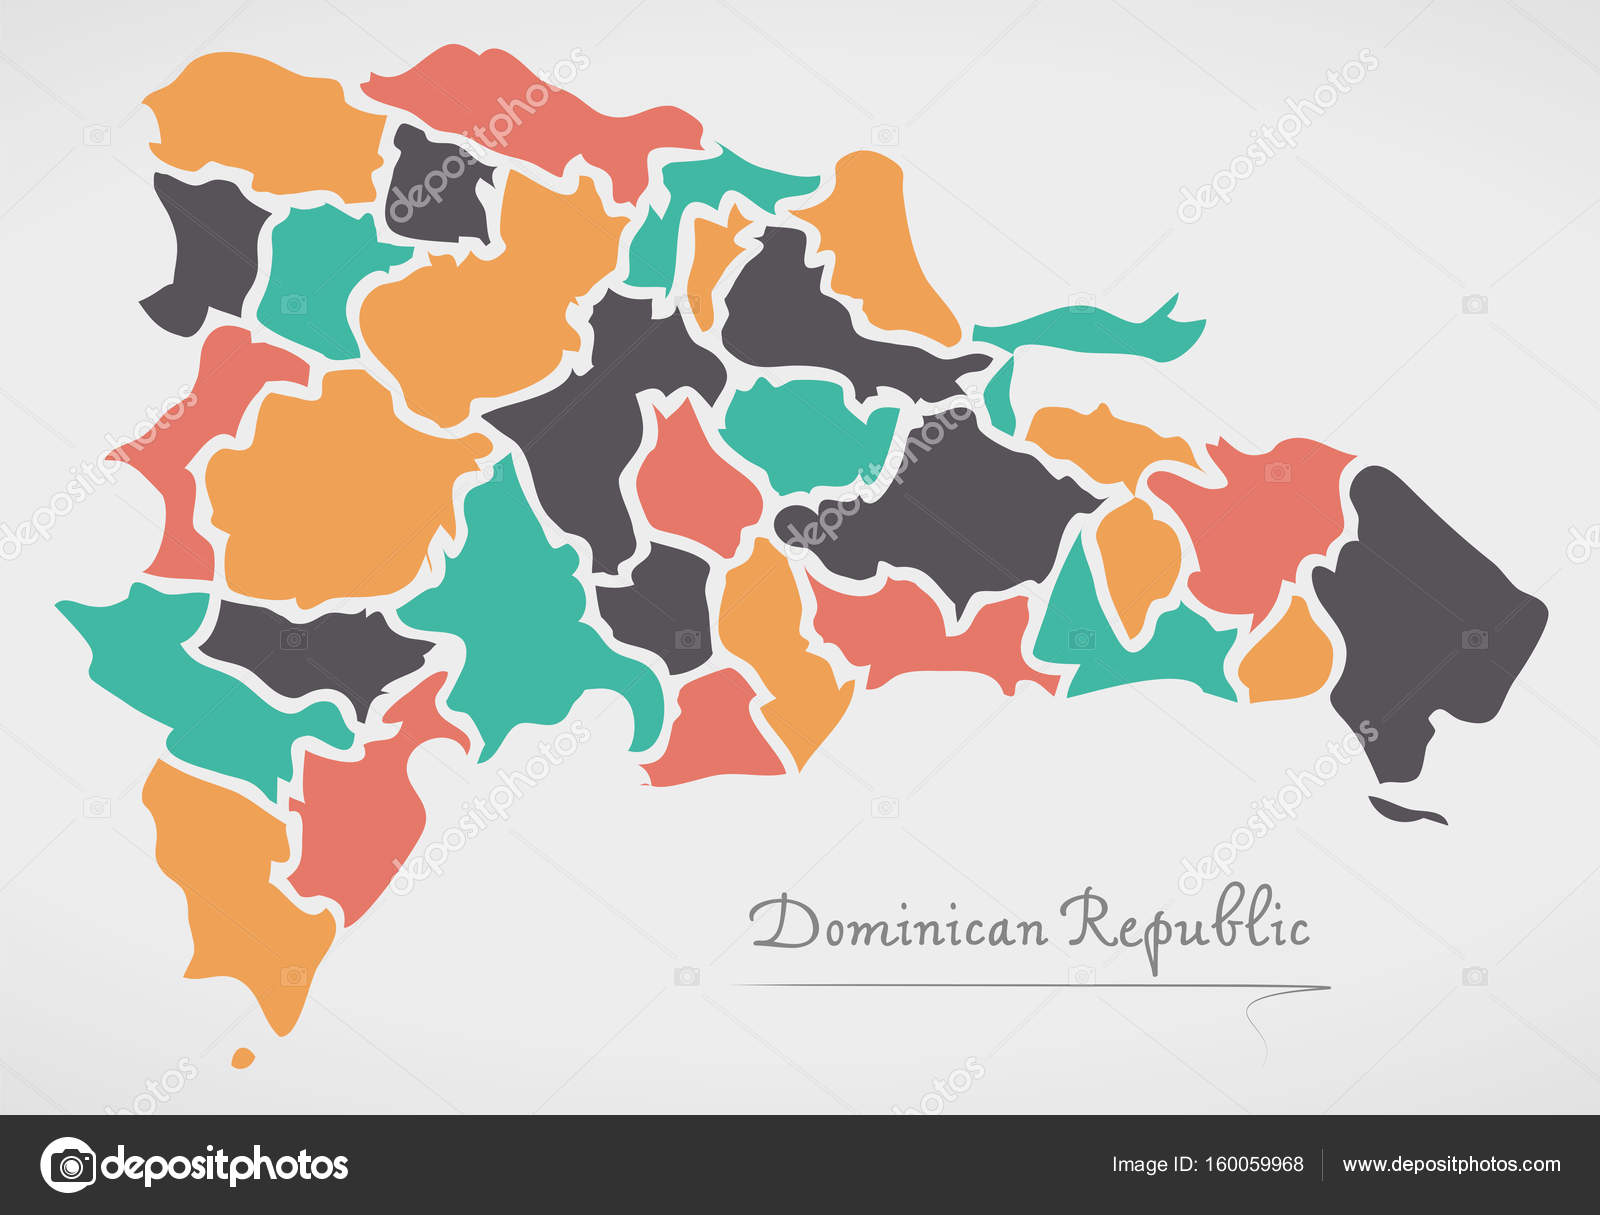 Dominican republic map with states and modern round shapes stock dominican republic map with states and modern round shapes stock vector gumiabroncs Image collections